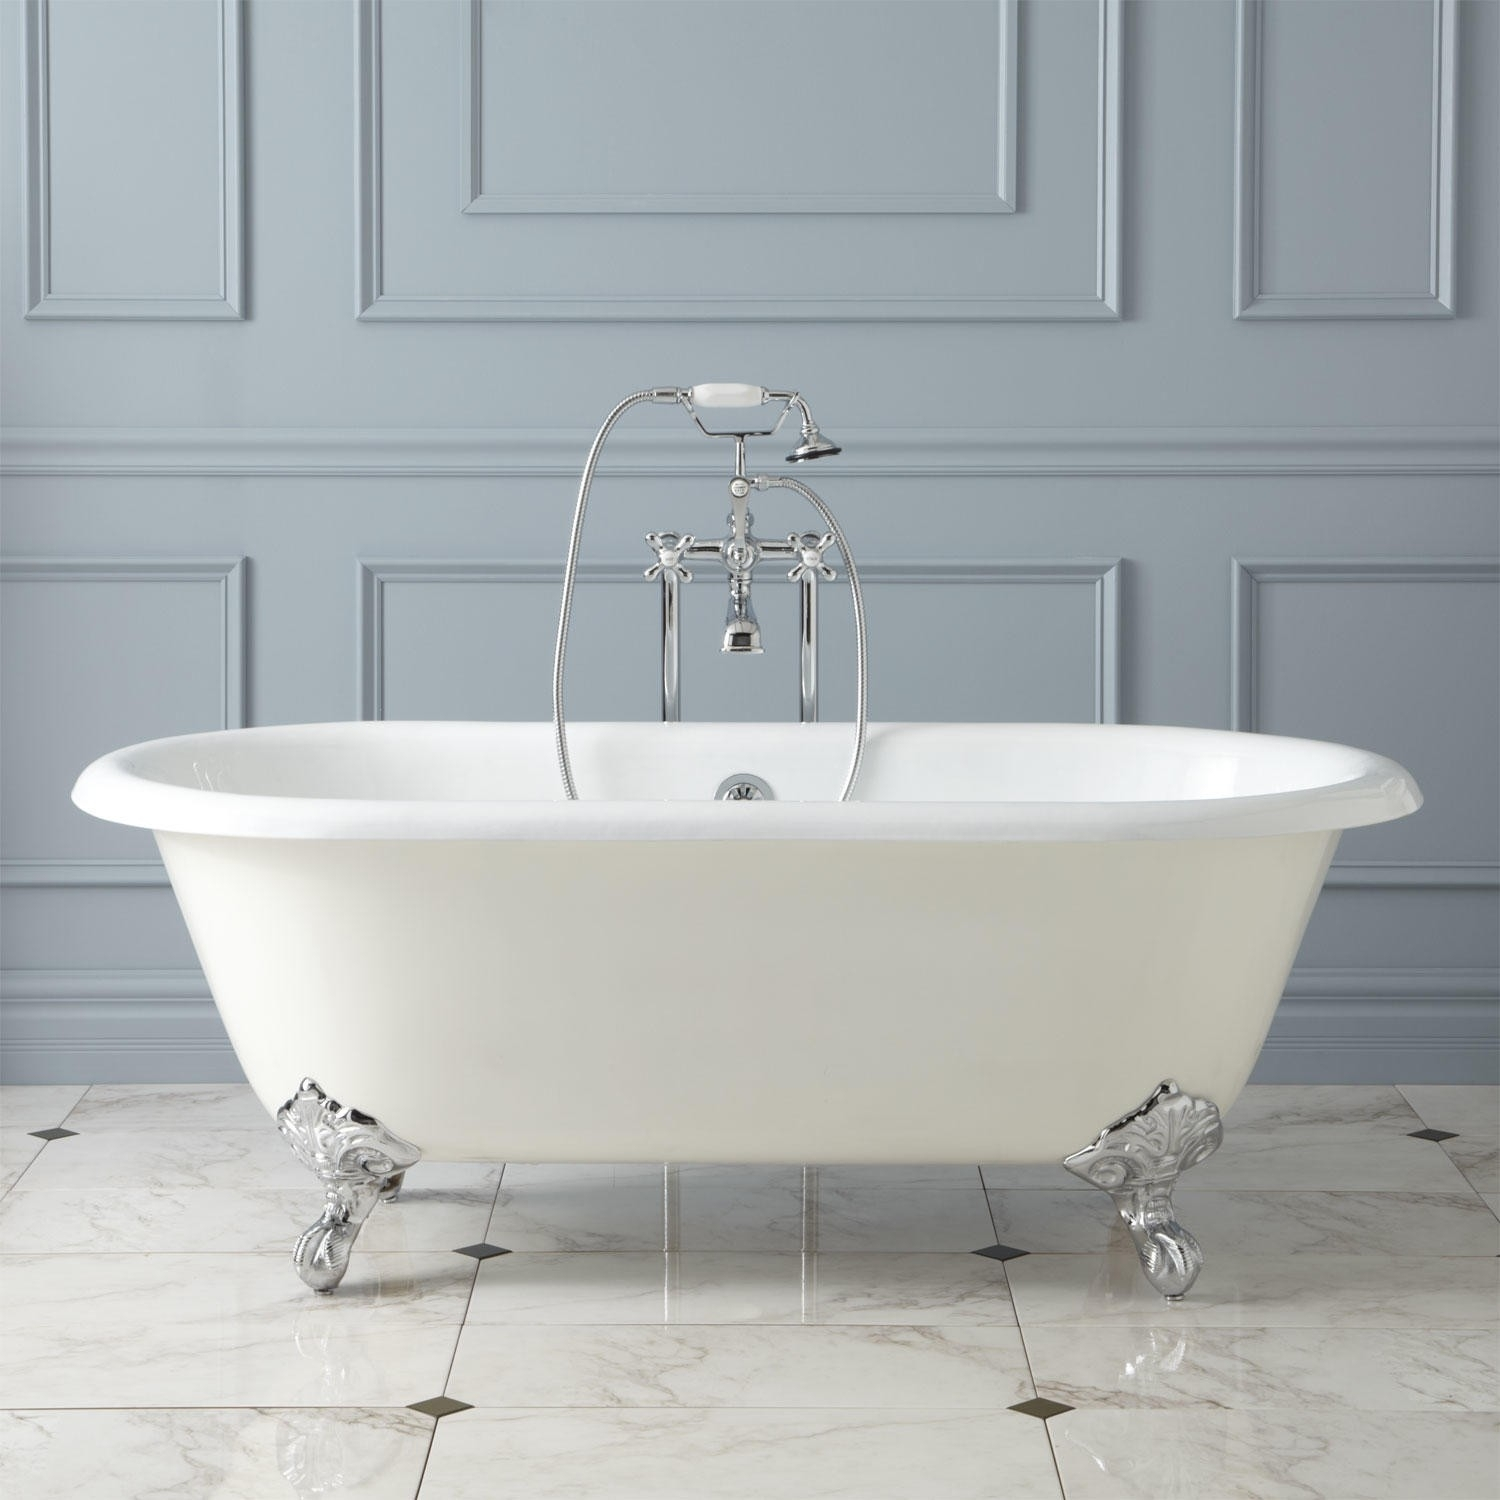 stained solutions clawfoot bases treatment tub wall vessel cabinet treatments bathx window mirror liners paint tile bathtub vanity reglazing bathroom resurfacing ceramic blue shower sink and